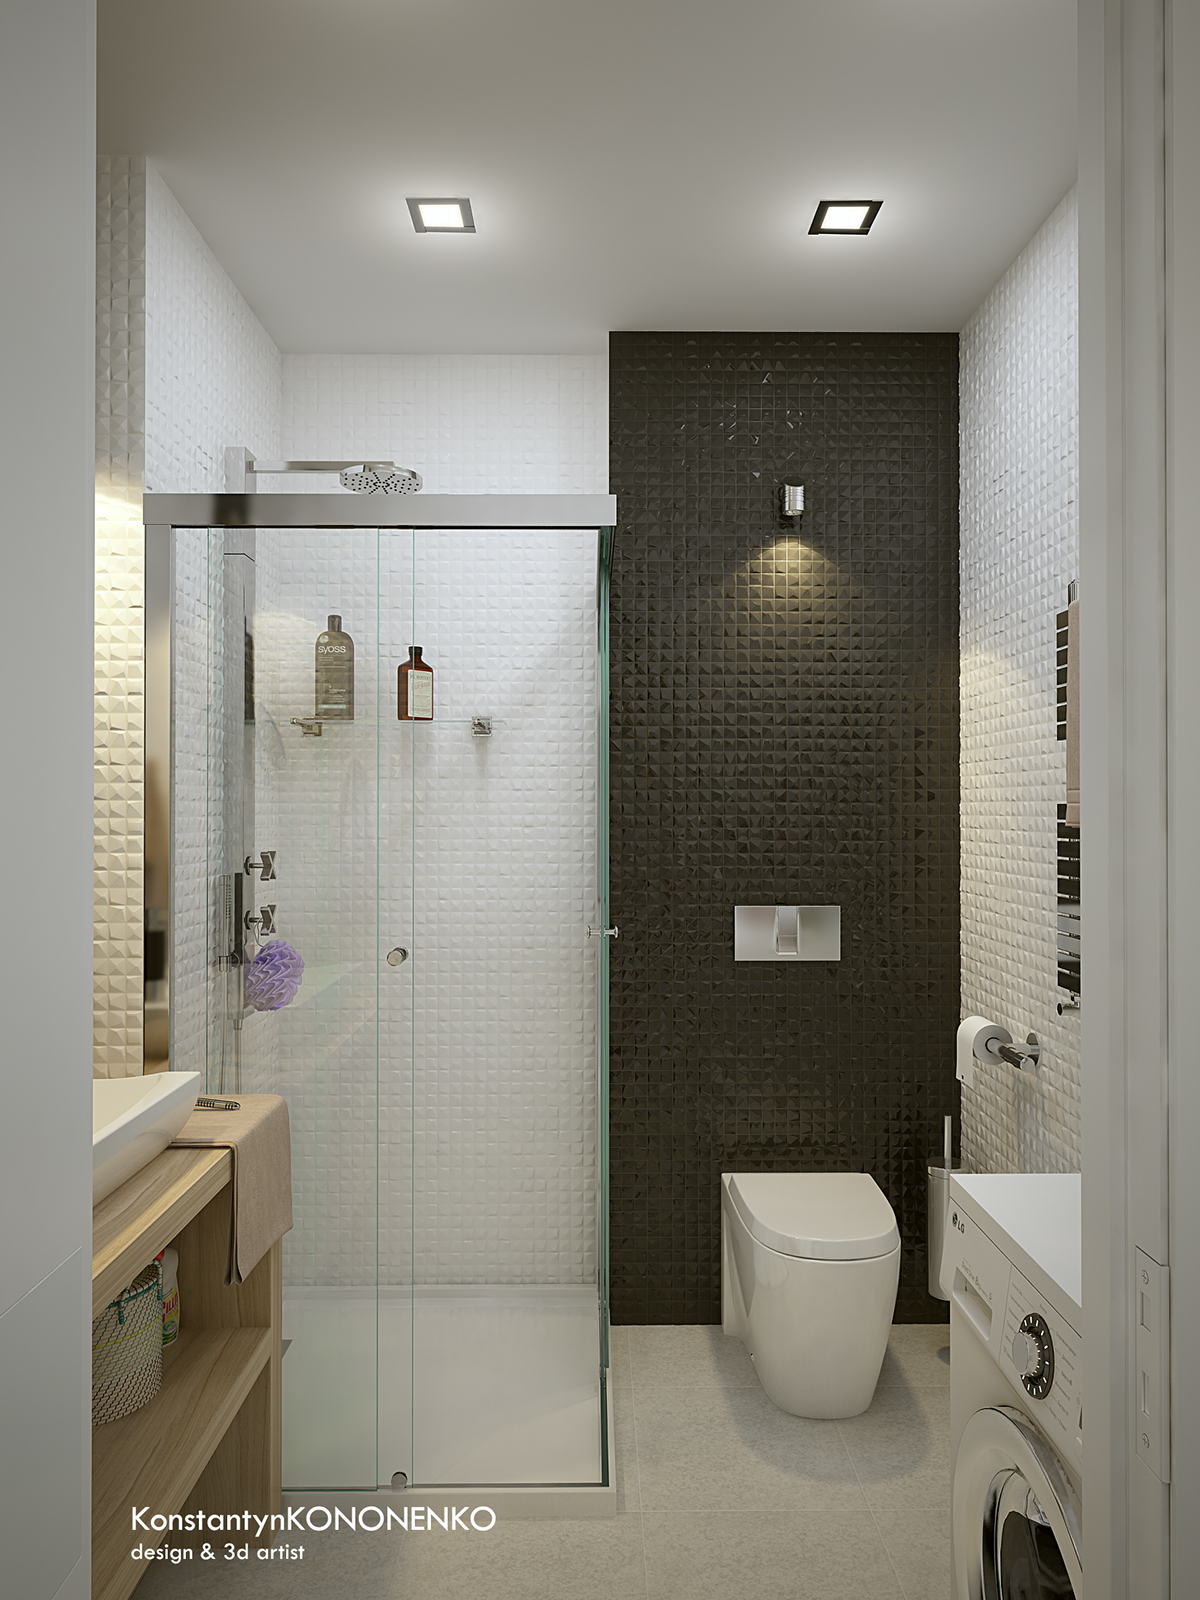 5 apartment designs under 500 square feet - How to layout a bathroom remodel ...